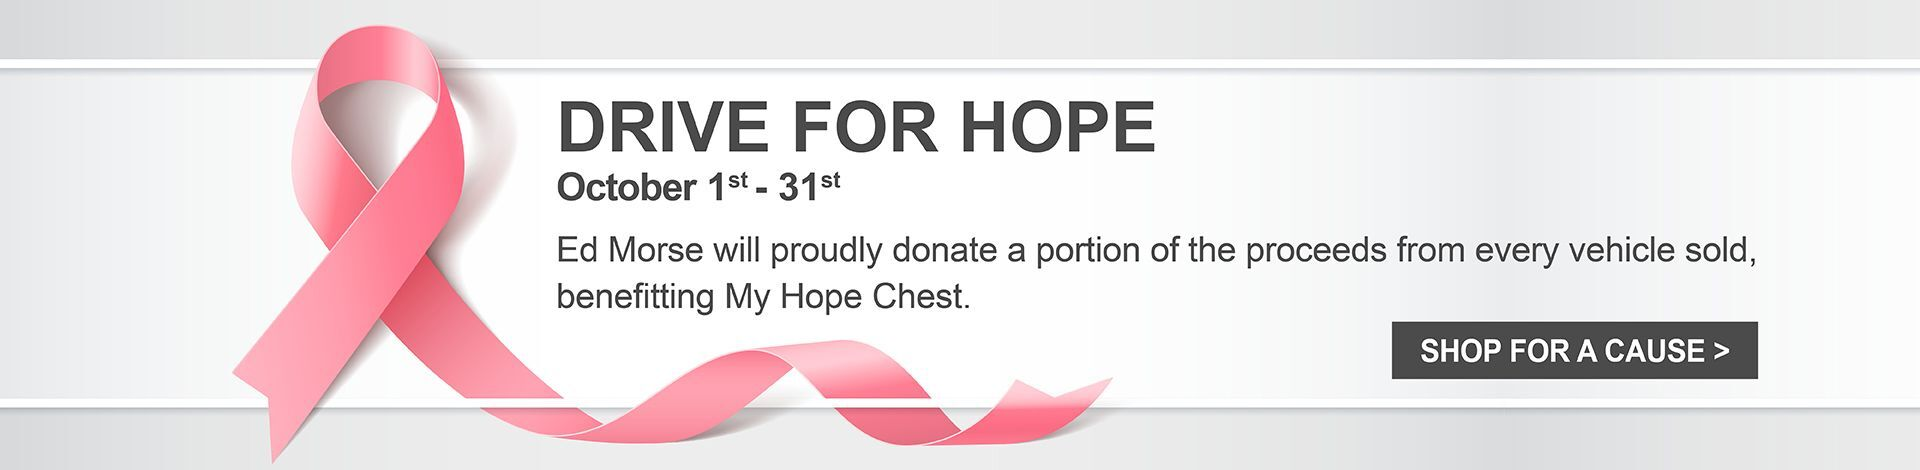 Drive for Hope